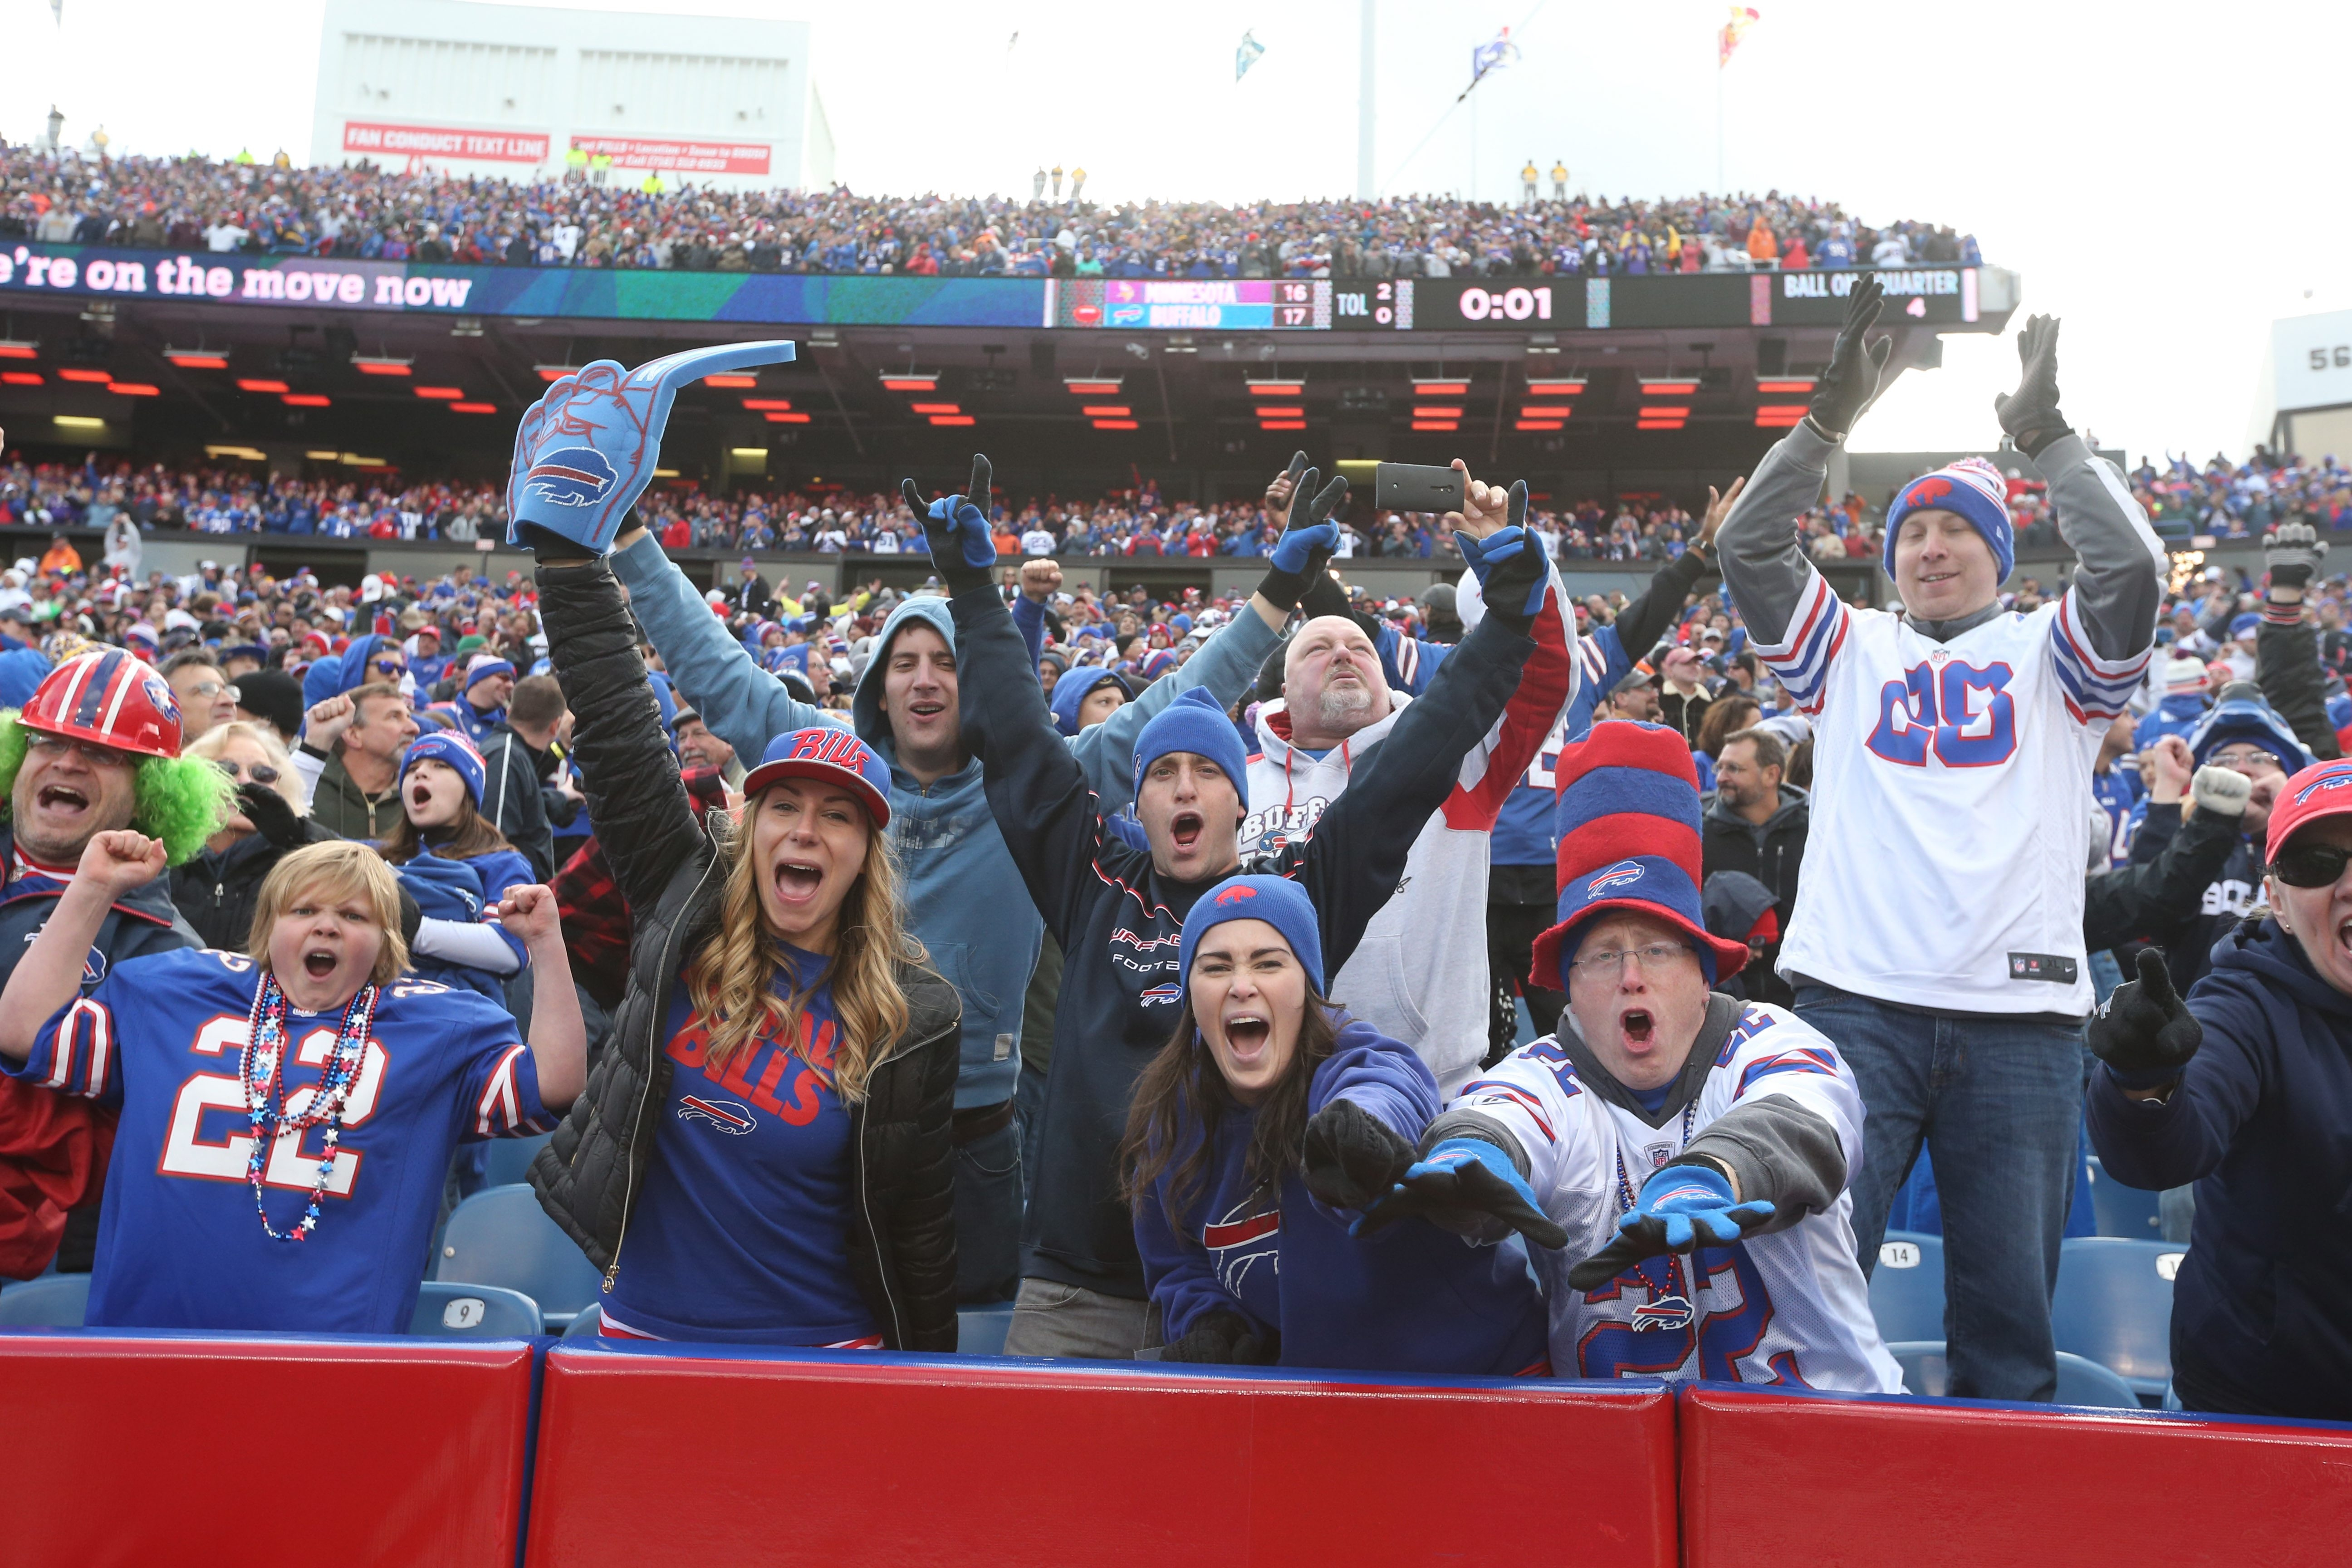 Bills fans will have to be loud, proud and passionate at Ralph Wilson Stadium on Sunday, when officials from Guinness World Records are there to chart Buffalo's attempt at a noise mark for outdoor stadiums.   Buffalo Bills fans react to the Buffalo Bills wide receiver Sammy Watkins (14) touchdown in the fourth quarter at Ralph Wilson Stadium in Orchard Park, N.Y. on Sunday, Oct. 19, 2014.  (James P. McCoy/ Buffalo News)